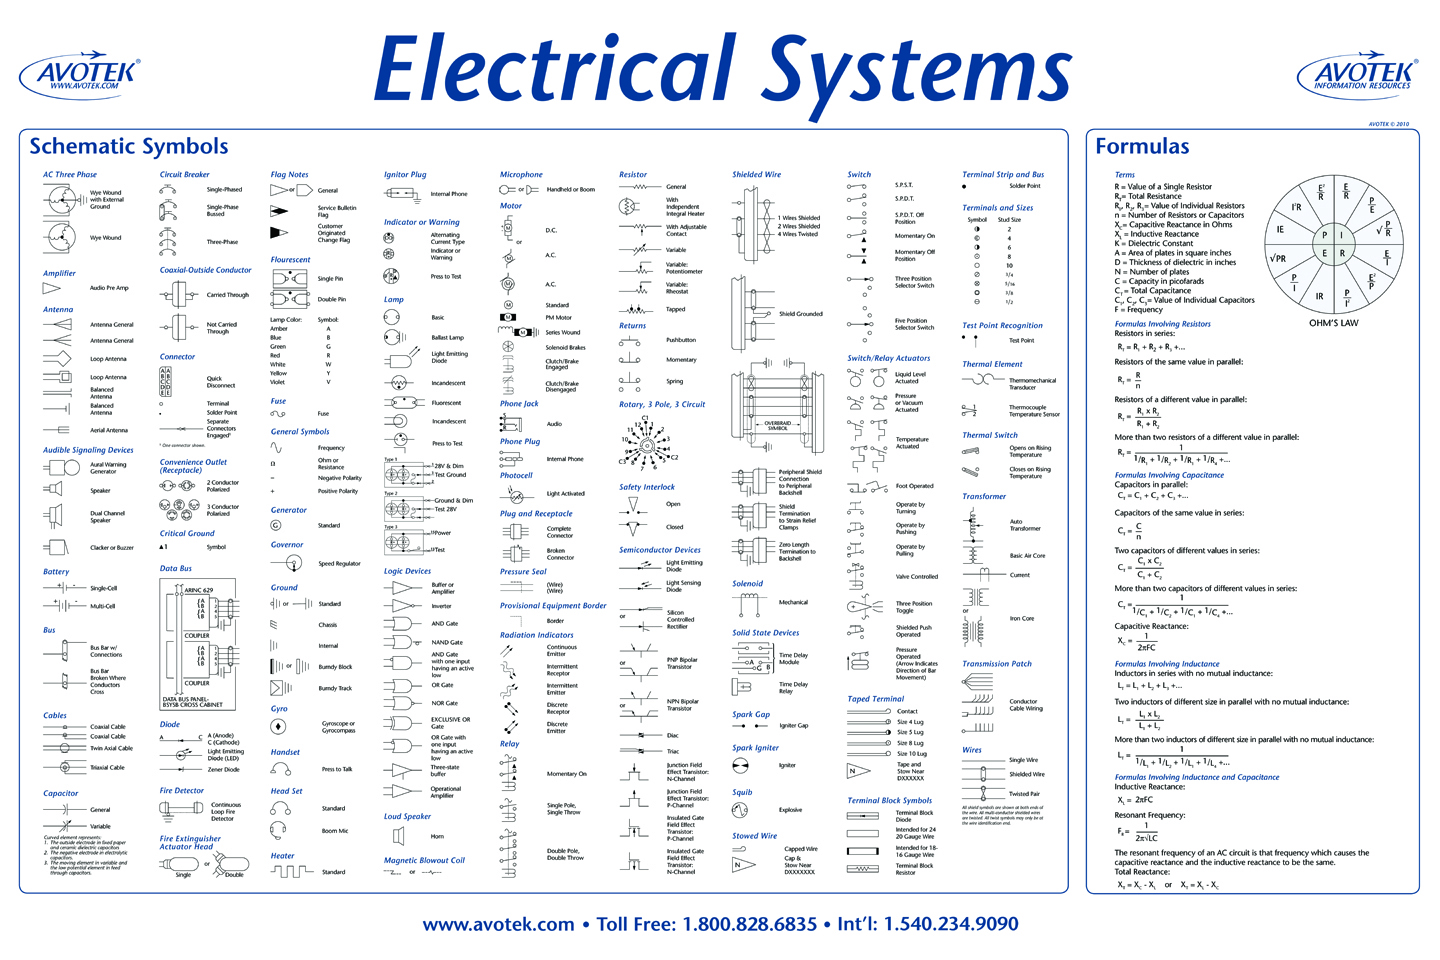 ... Classroom Poster - Electrical Systems. POSTER_Electrical.jpg